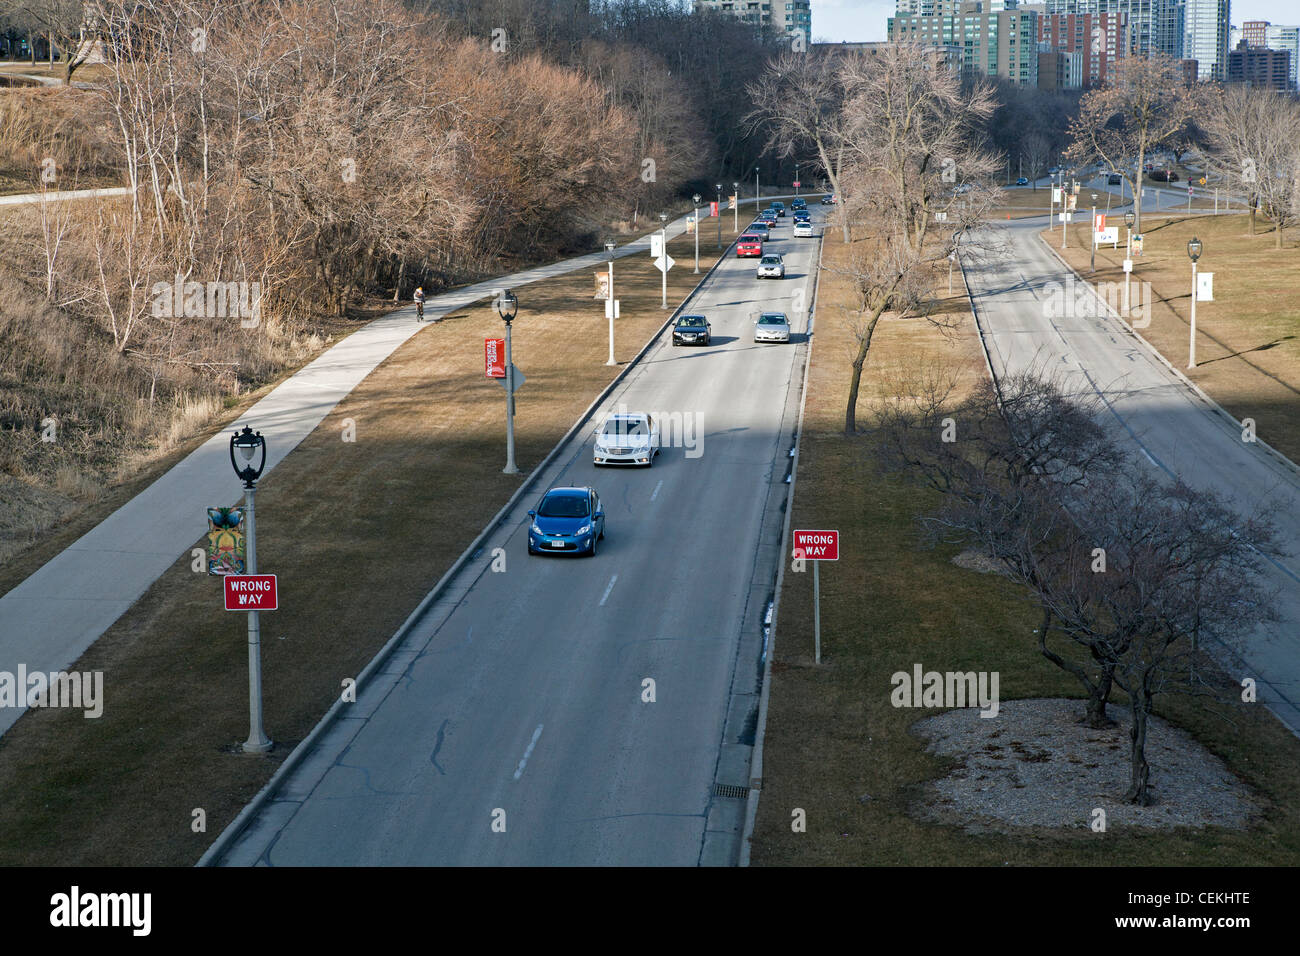 Cars have plenty of room on this boulevard in Milwaukee. - Stock Image